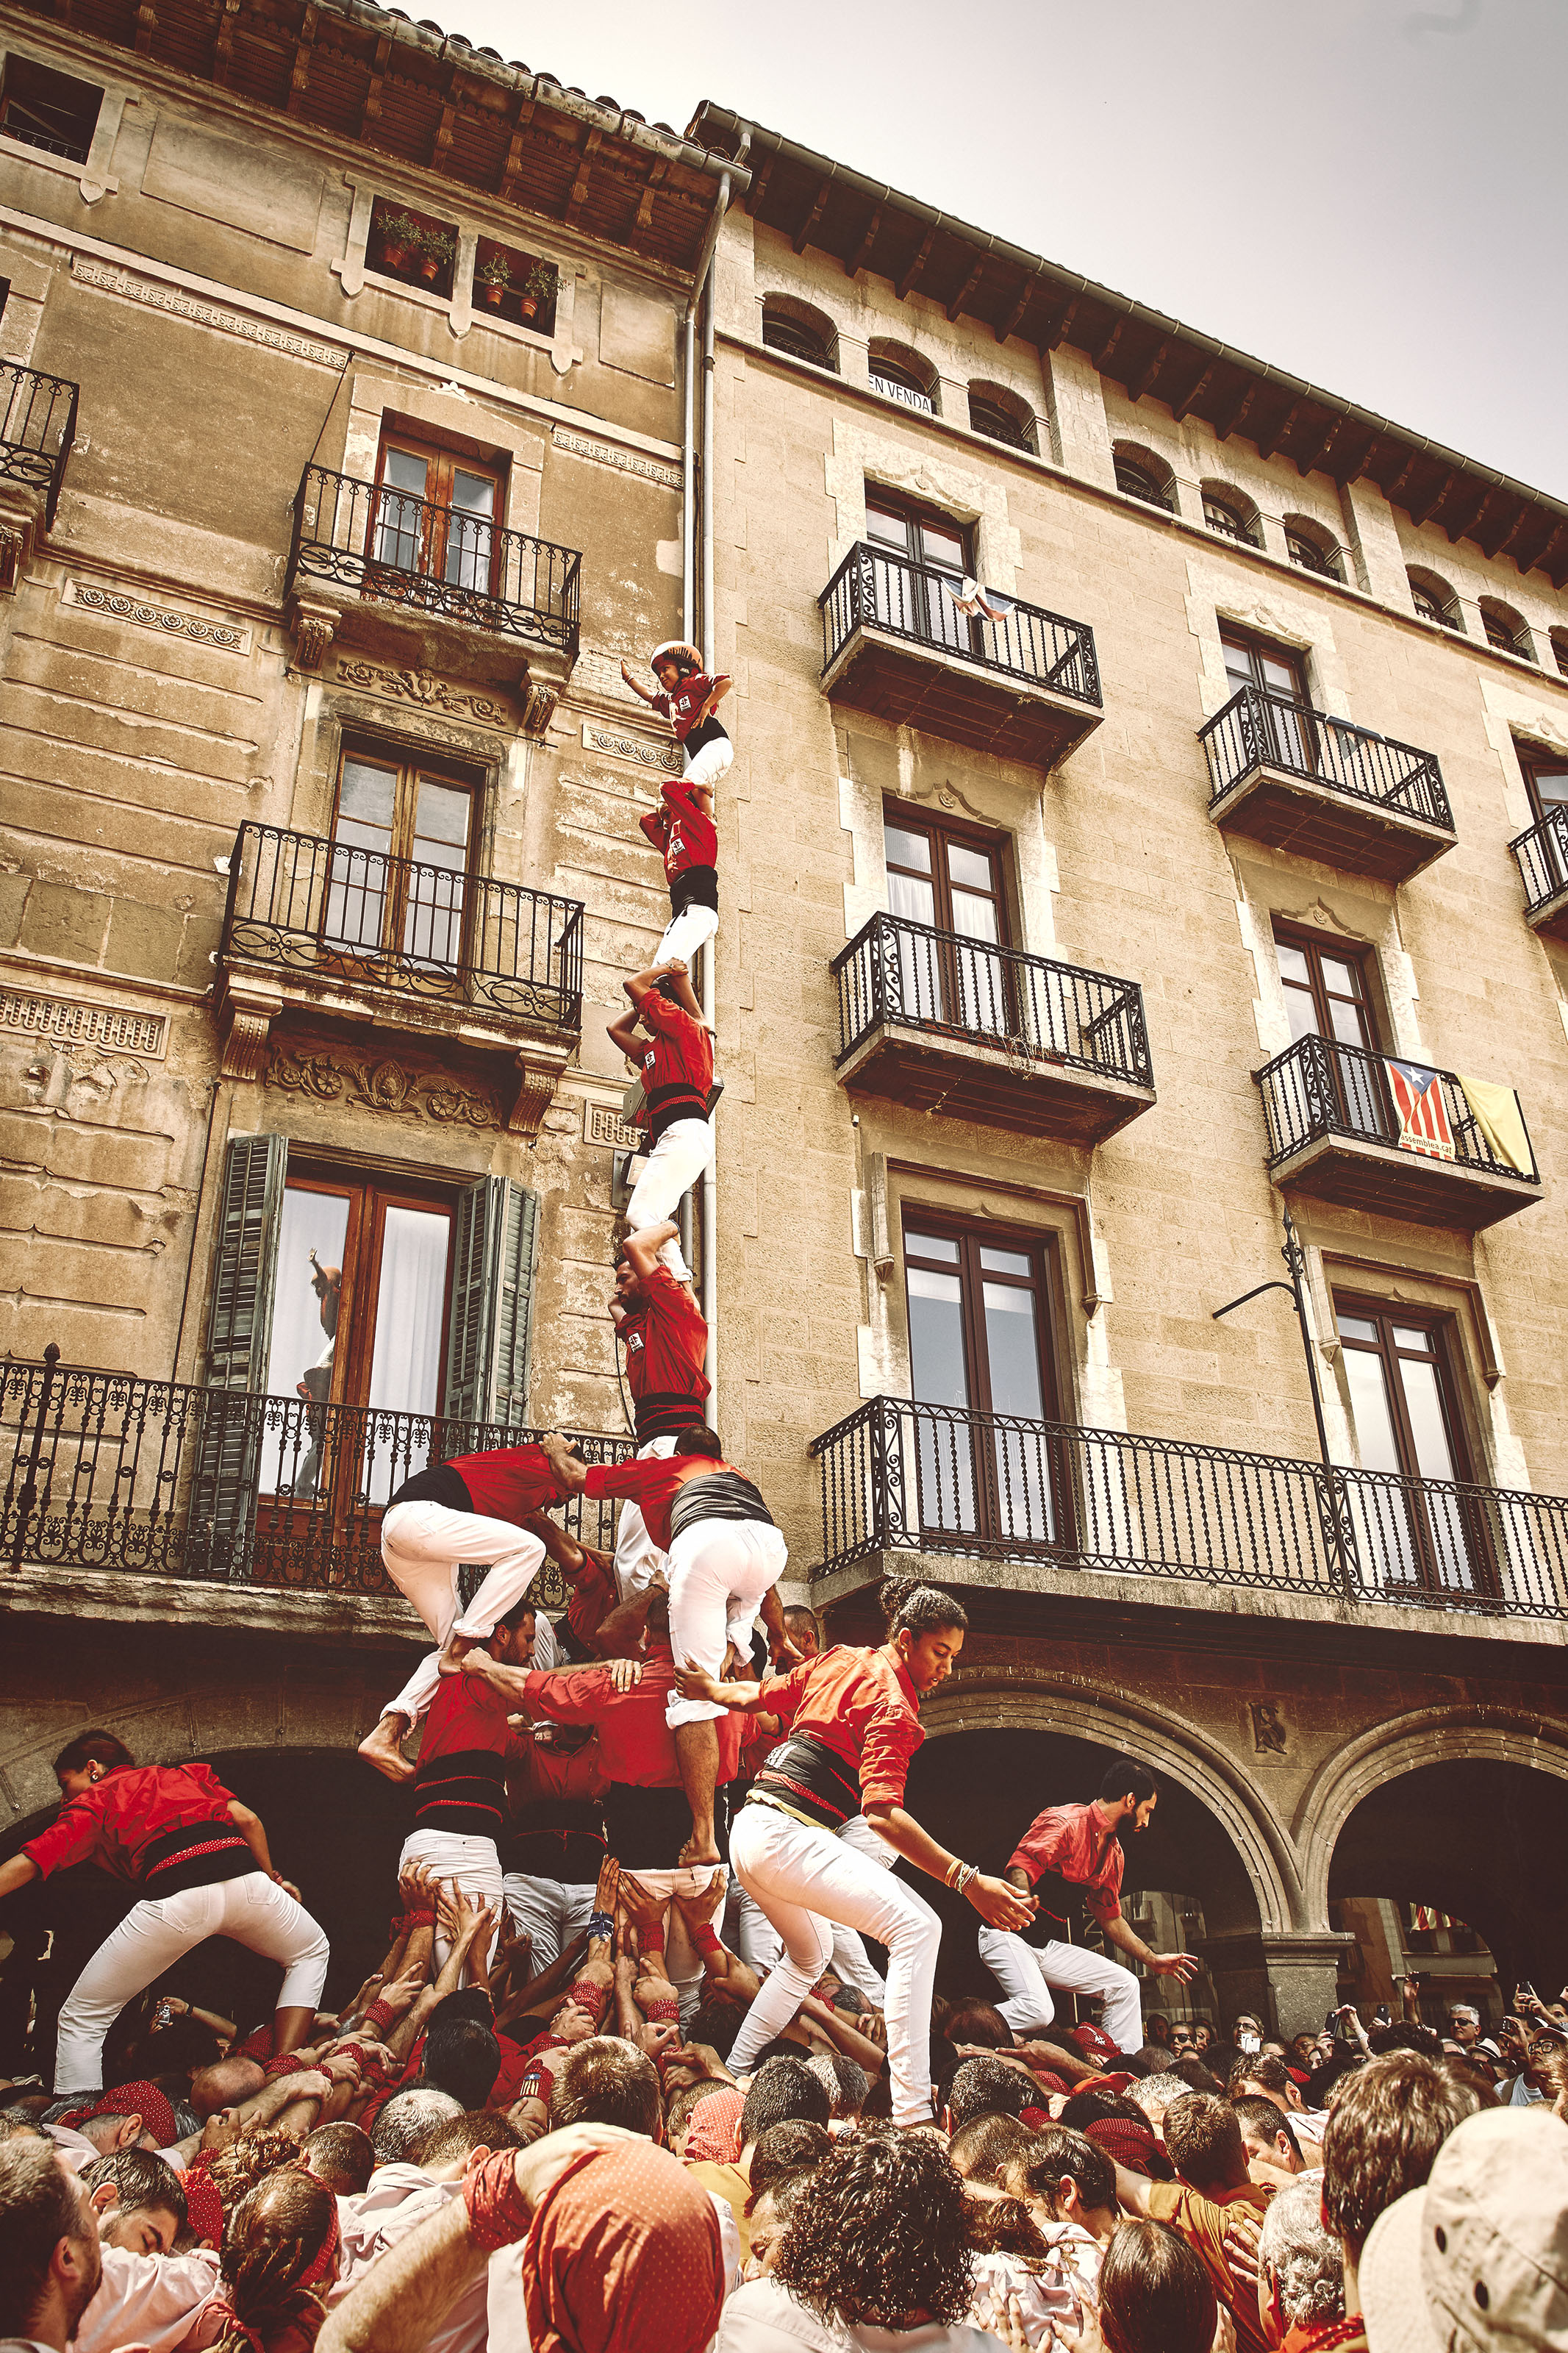 Castellers dismantling a human tower